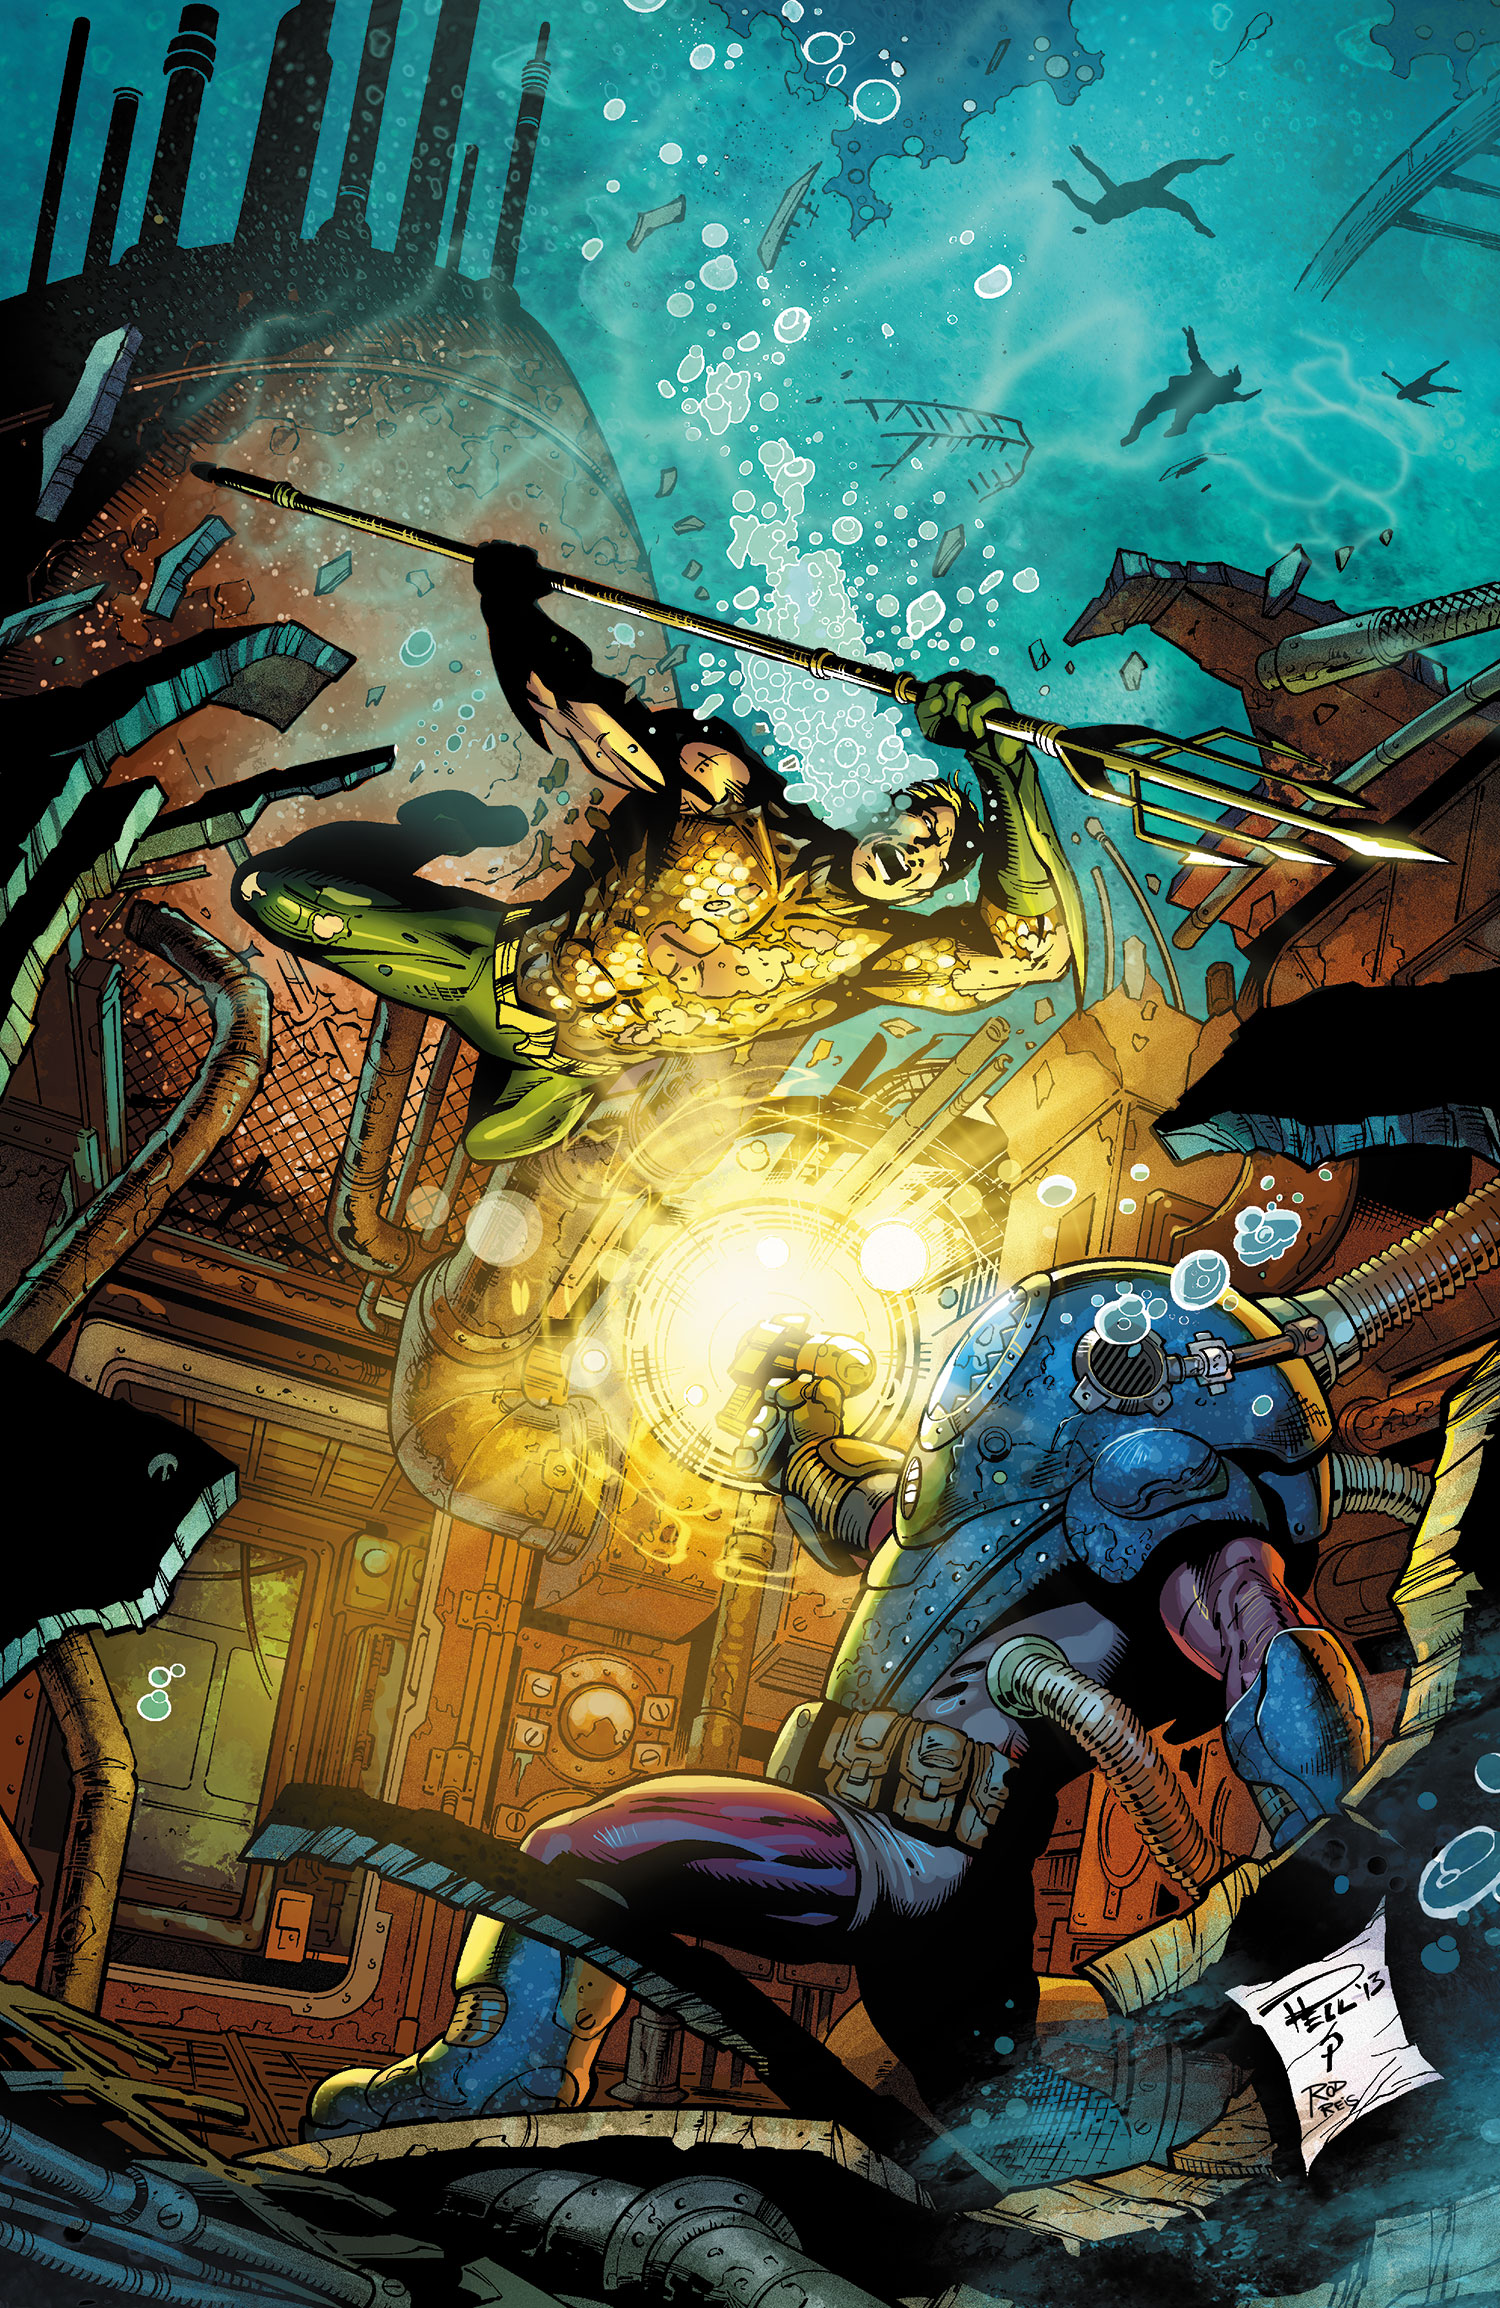 Aquaman #23 cover by Paul Pelletier, Sean Parsons, and Rod Reis